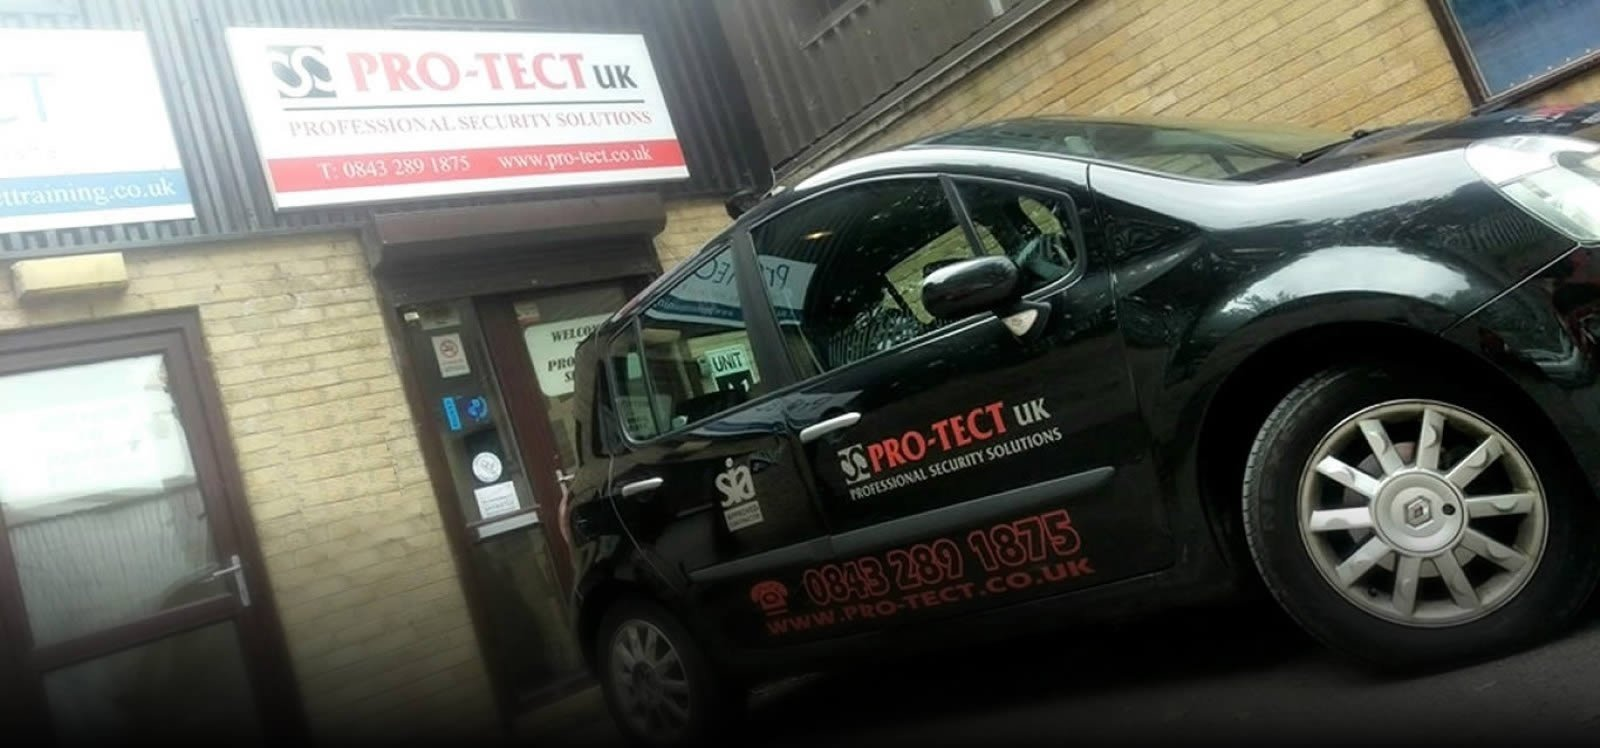 Pro-Tect UK SIA approved security company